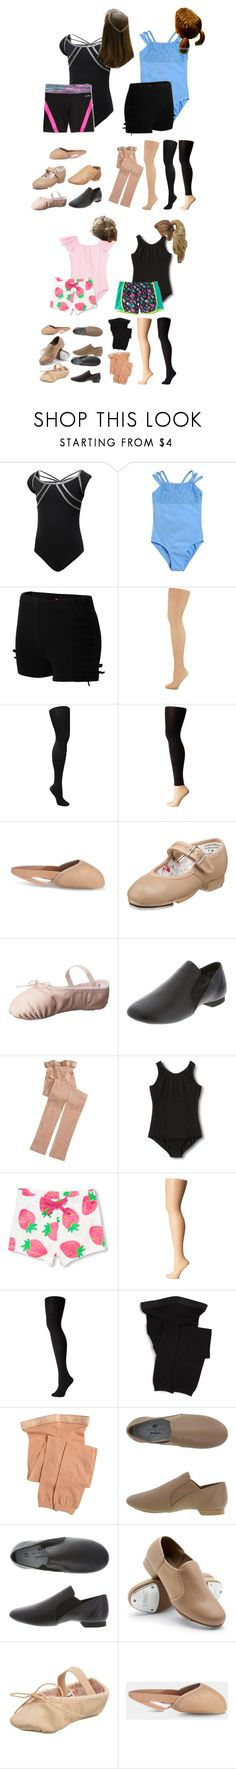 """Dance This Week"" by thesummitfam ❤ liked on Polyvore featuring Capezio, Capezio Dance, Muk Luks, Hue, Bloch Dance, Bloch, Danshuz, The Children's Place, Wolford and Falke"